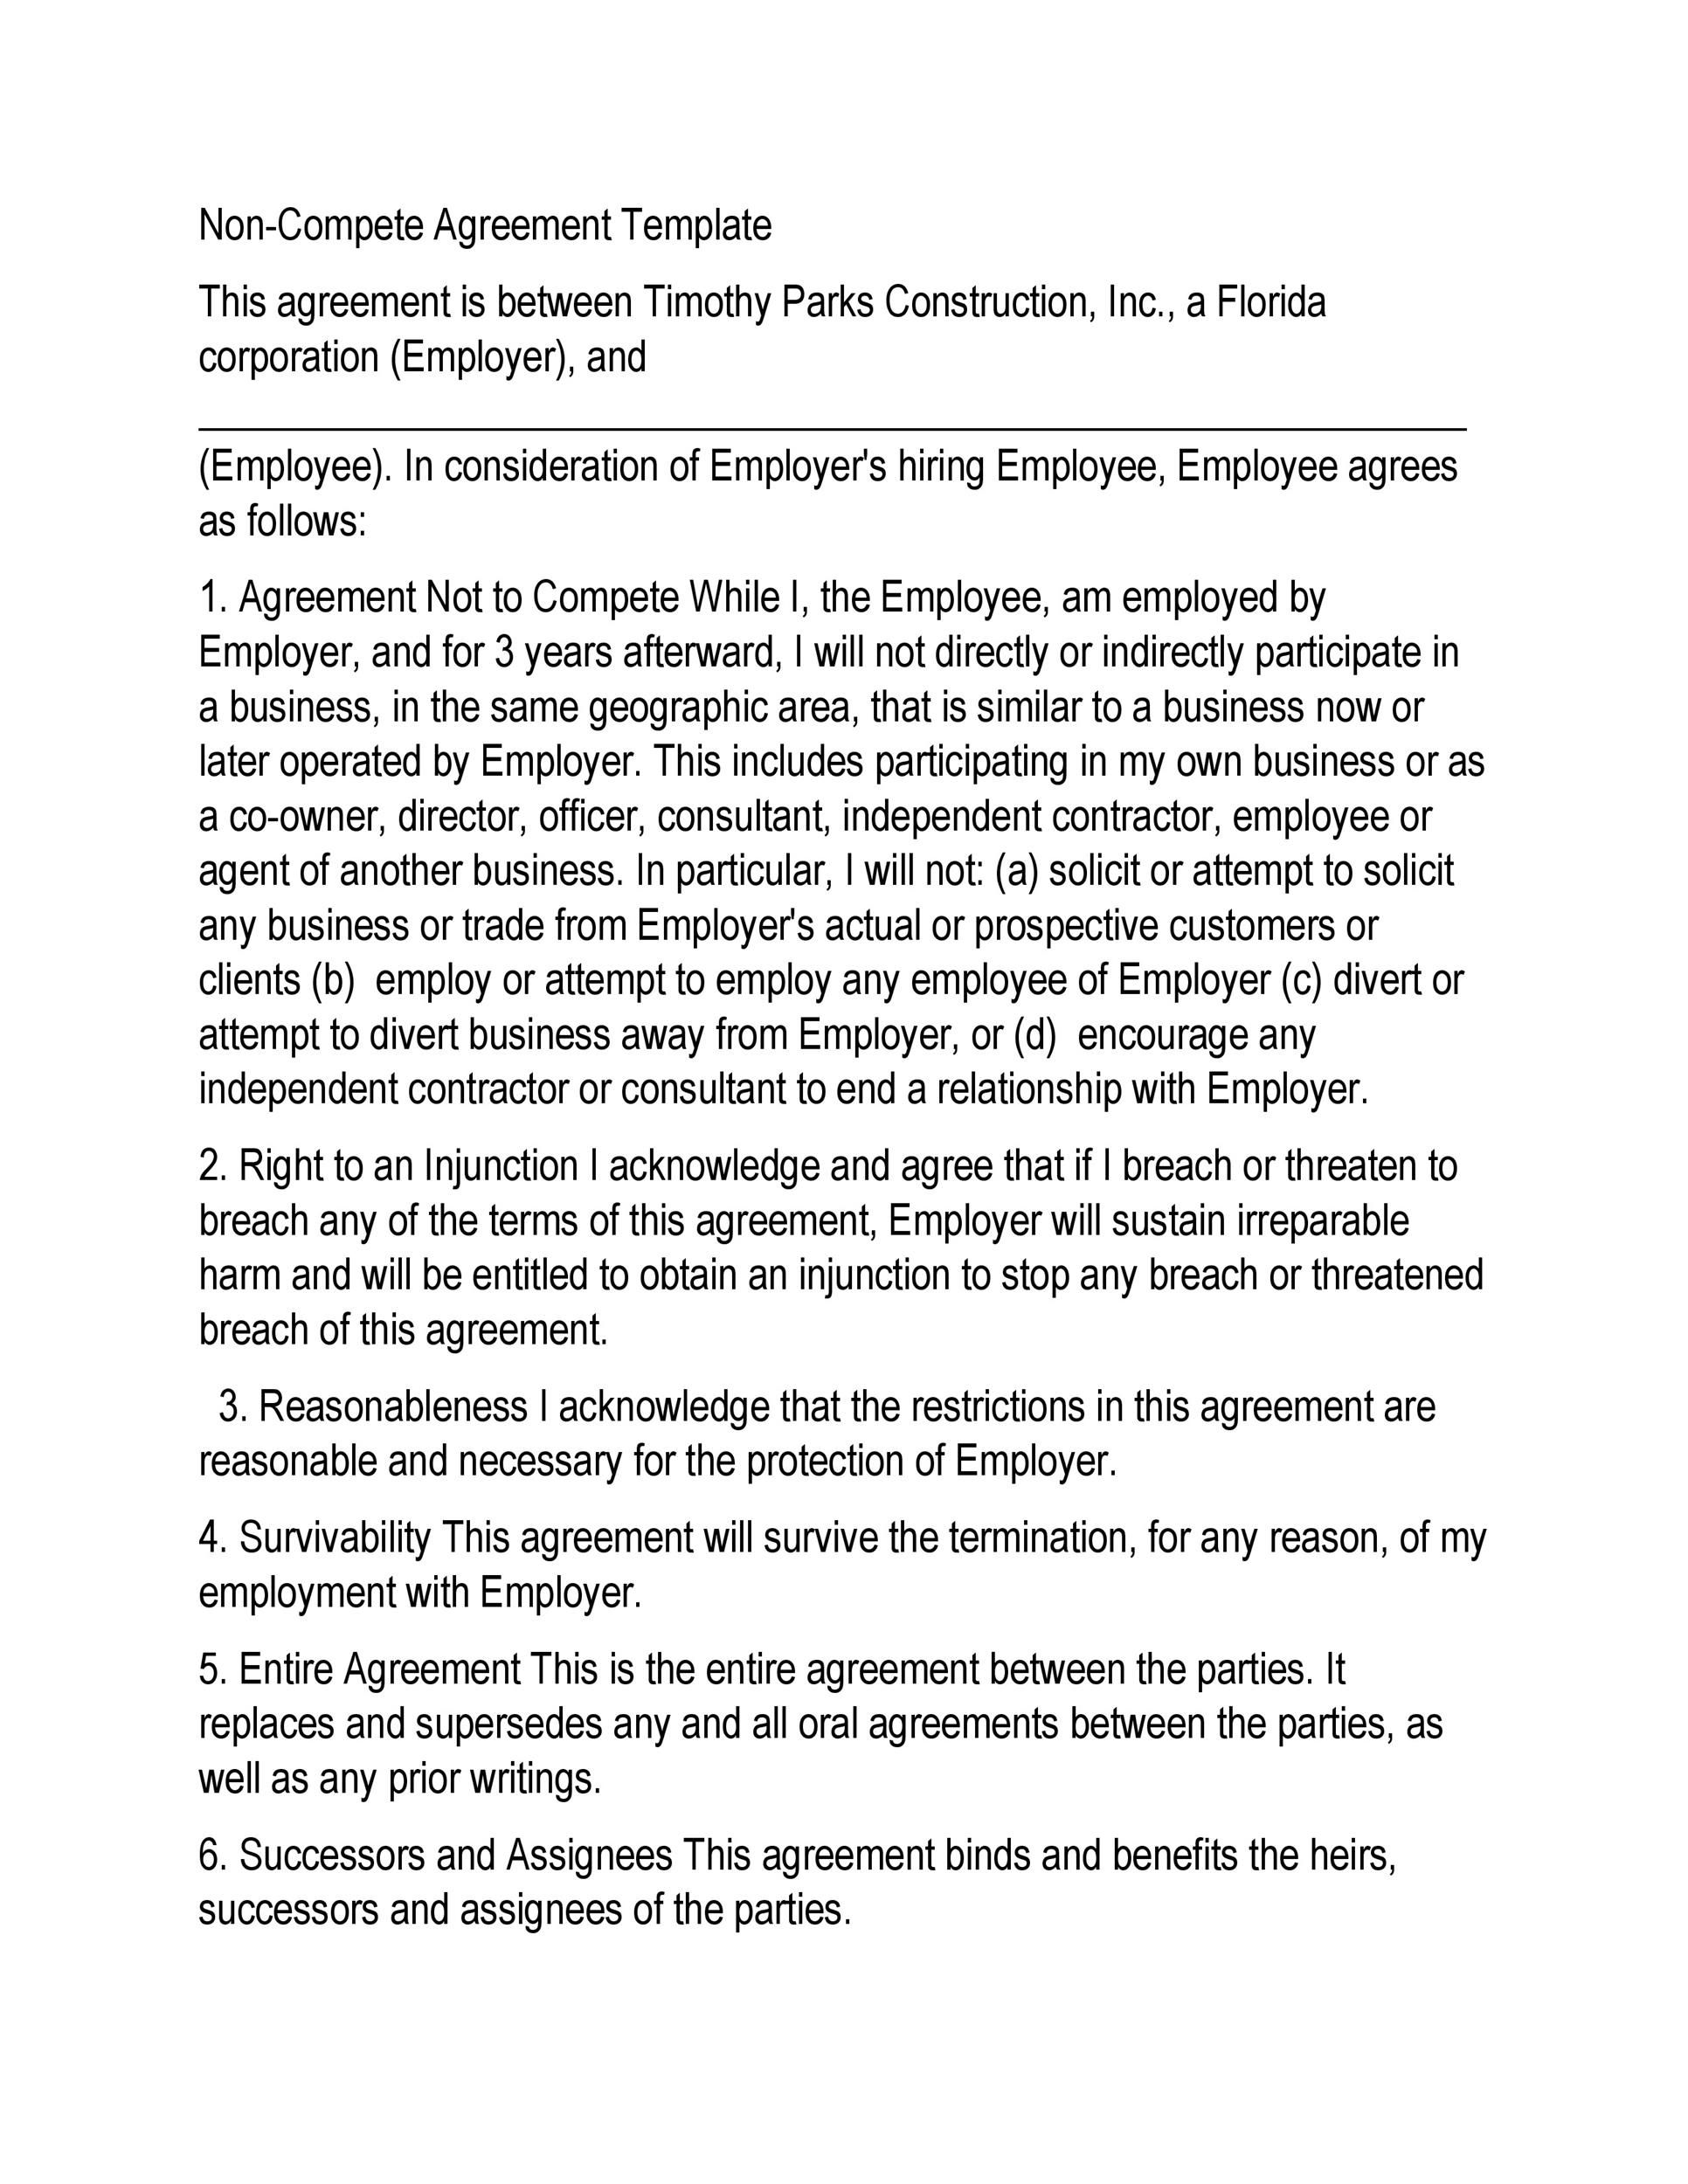 005 Excellent Non Compete Agreement Template Uk High Def Full